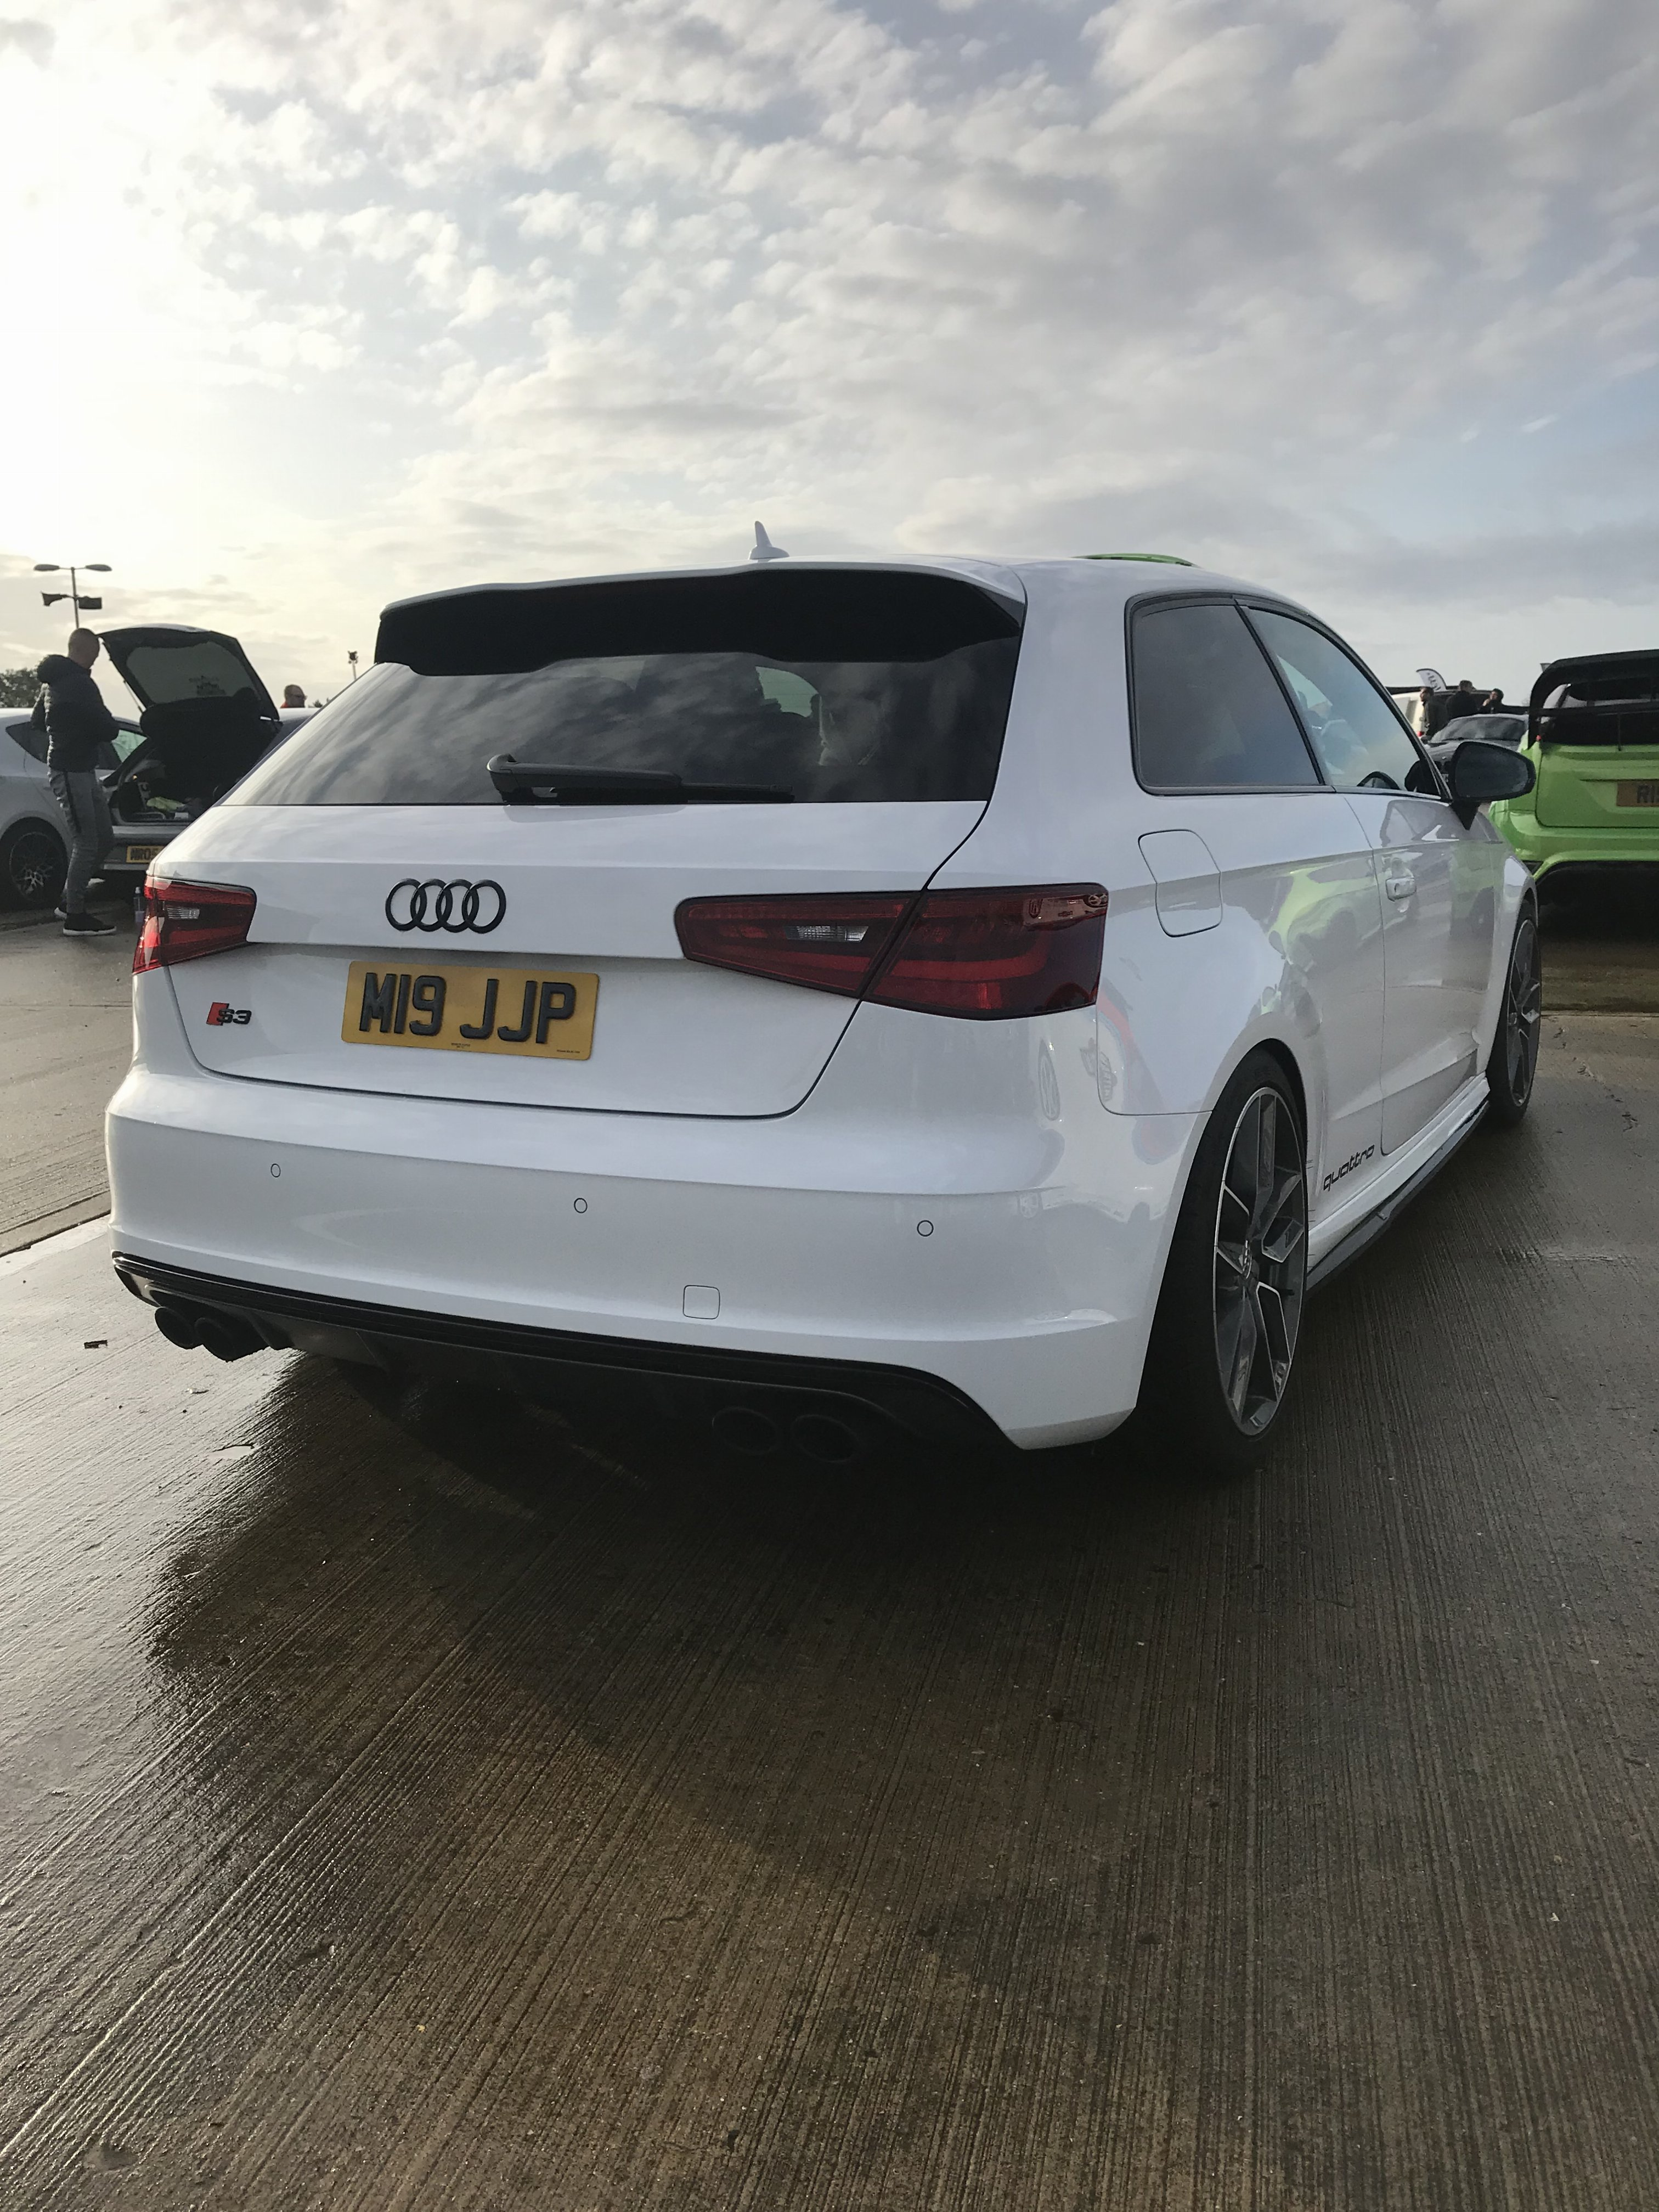 For Sale - 2015/65 AUDI S3 8V 400bhp+ Ibis White 3dr Hatch ...